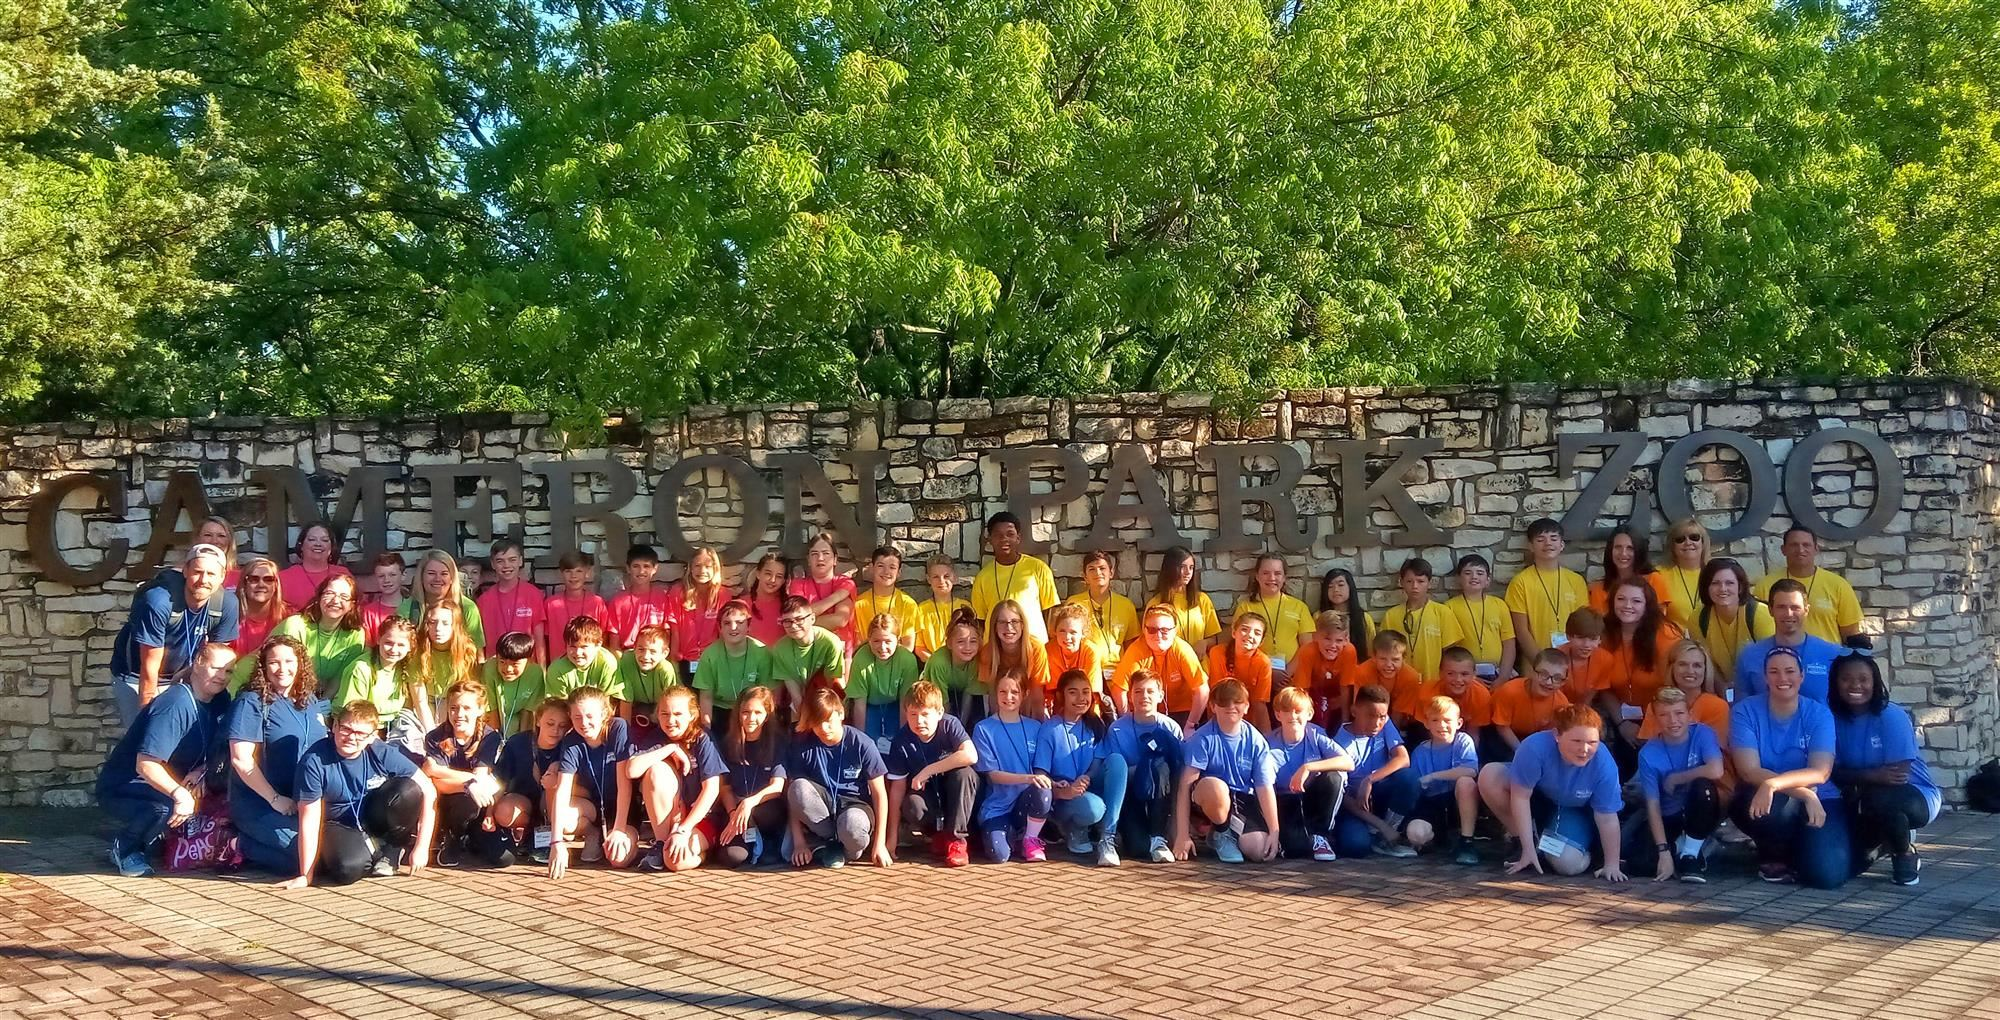 Highland Village Elementary fifth graders travel to Cameron Park Zoo, Waco Mammoth National Monument, and Inner Space Cavern